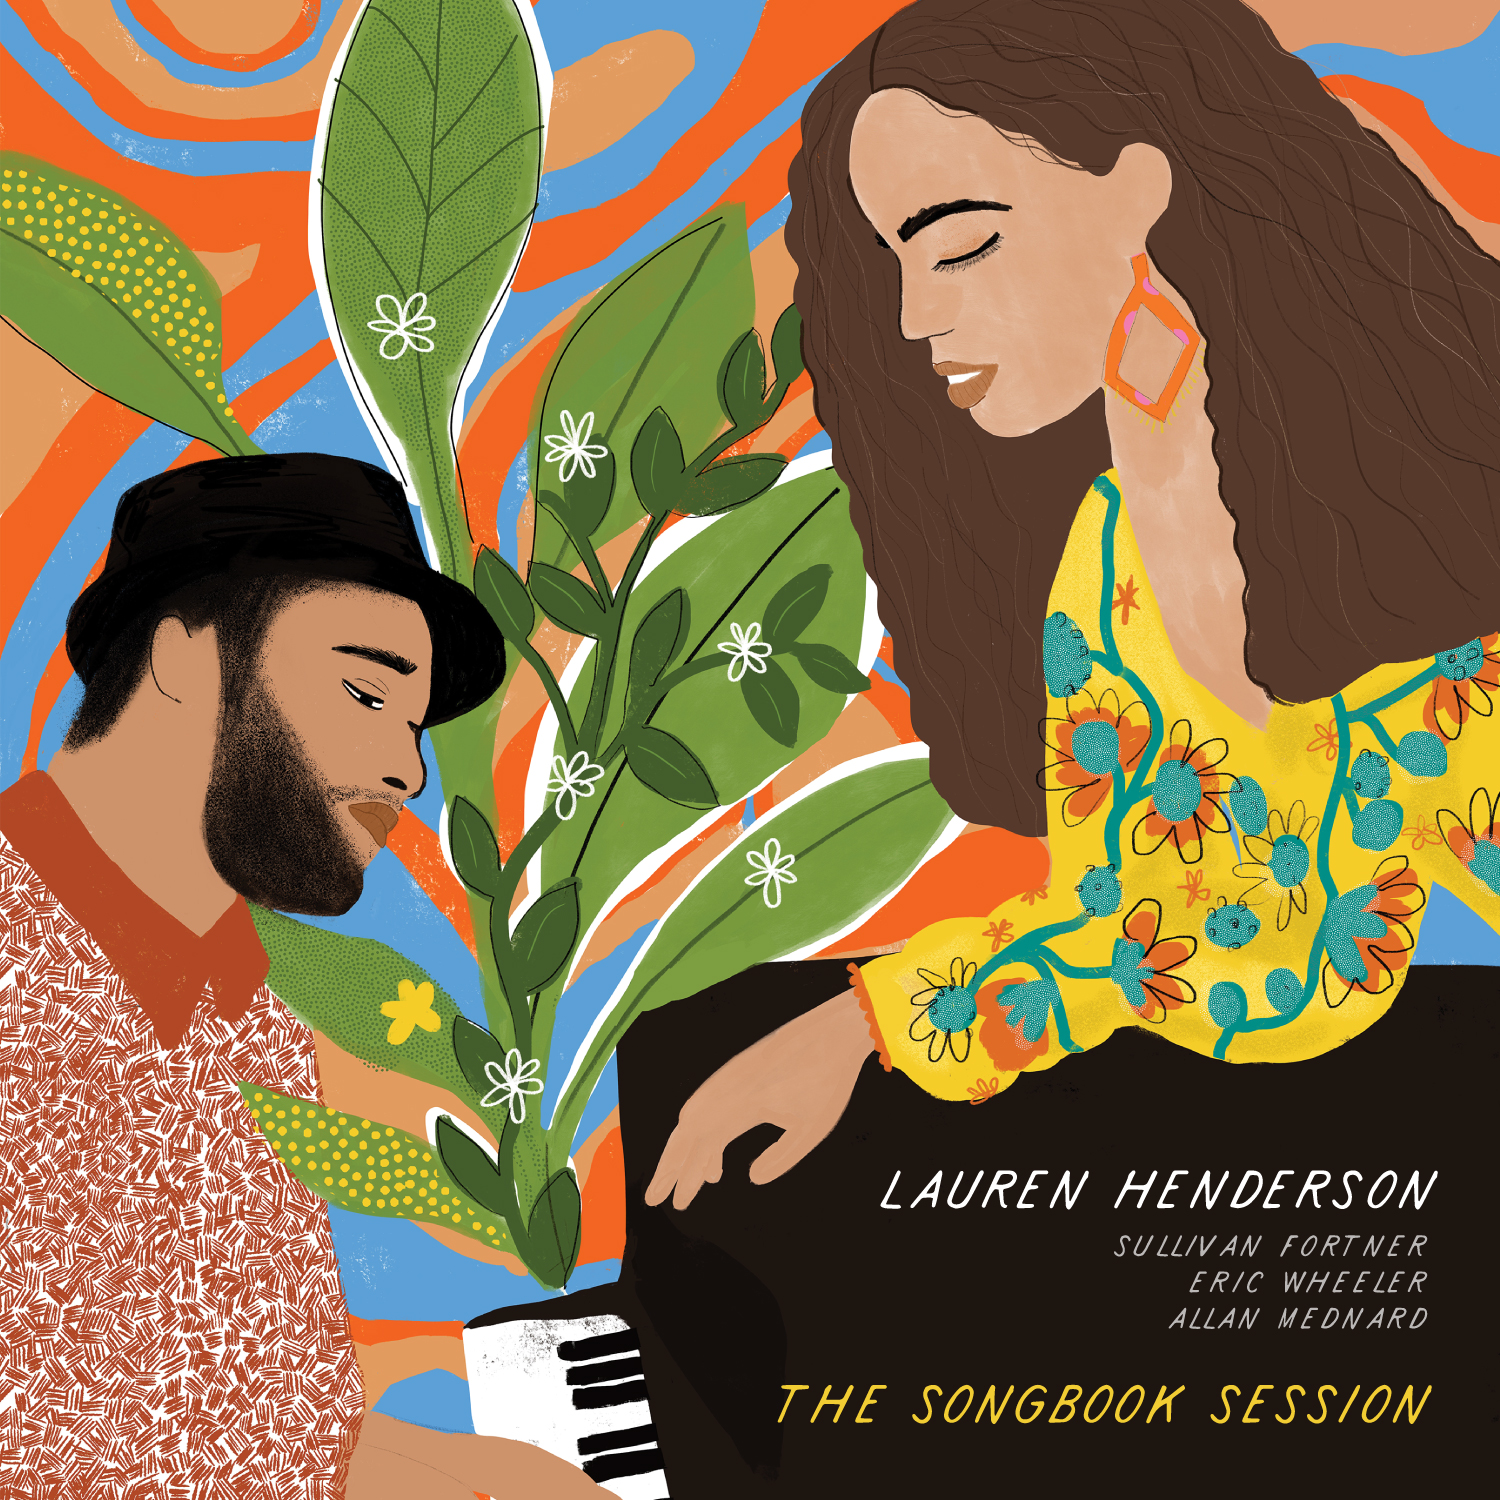 REVIEW: Lauren Henderson The Songbook Session in Let's Call This